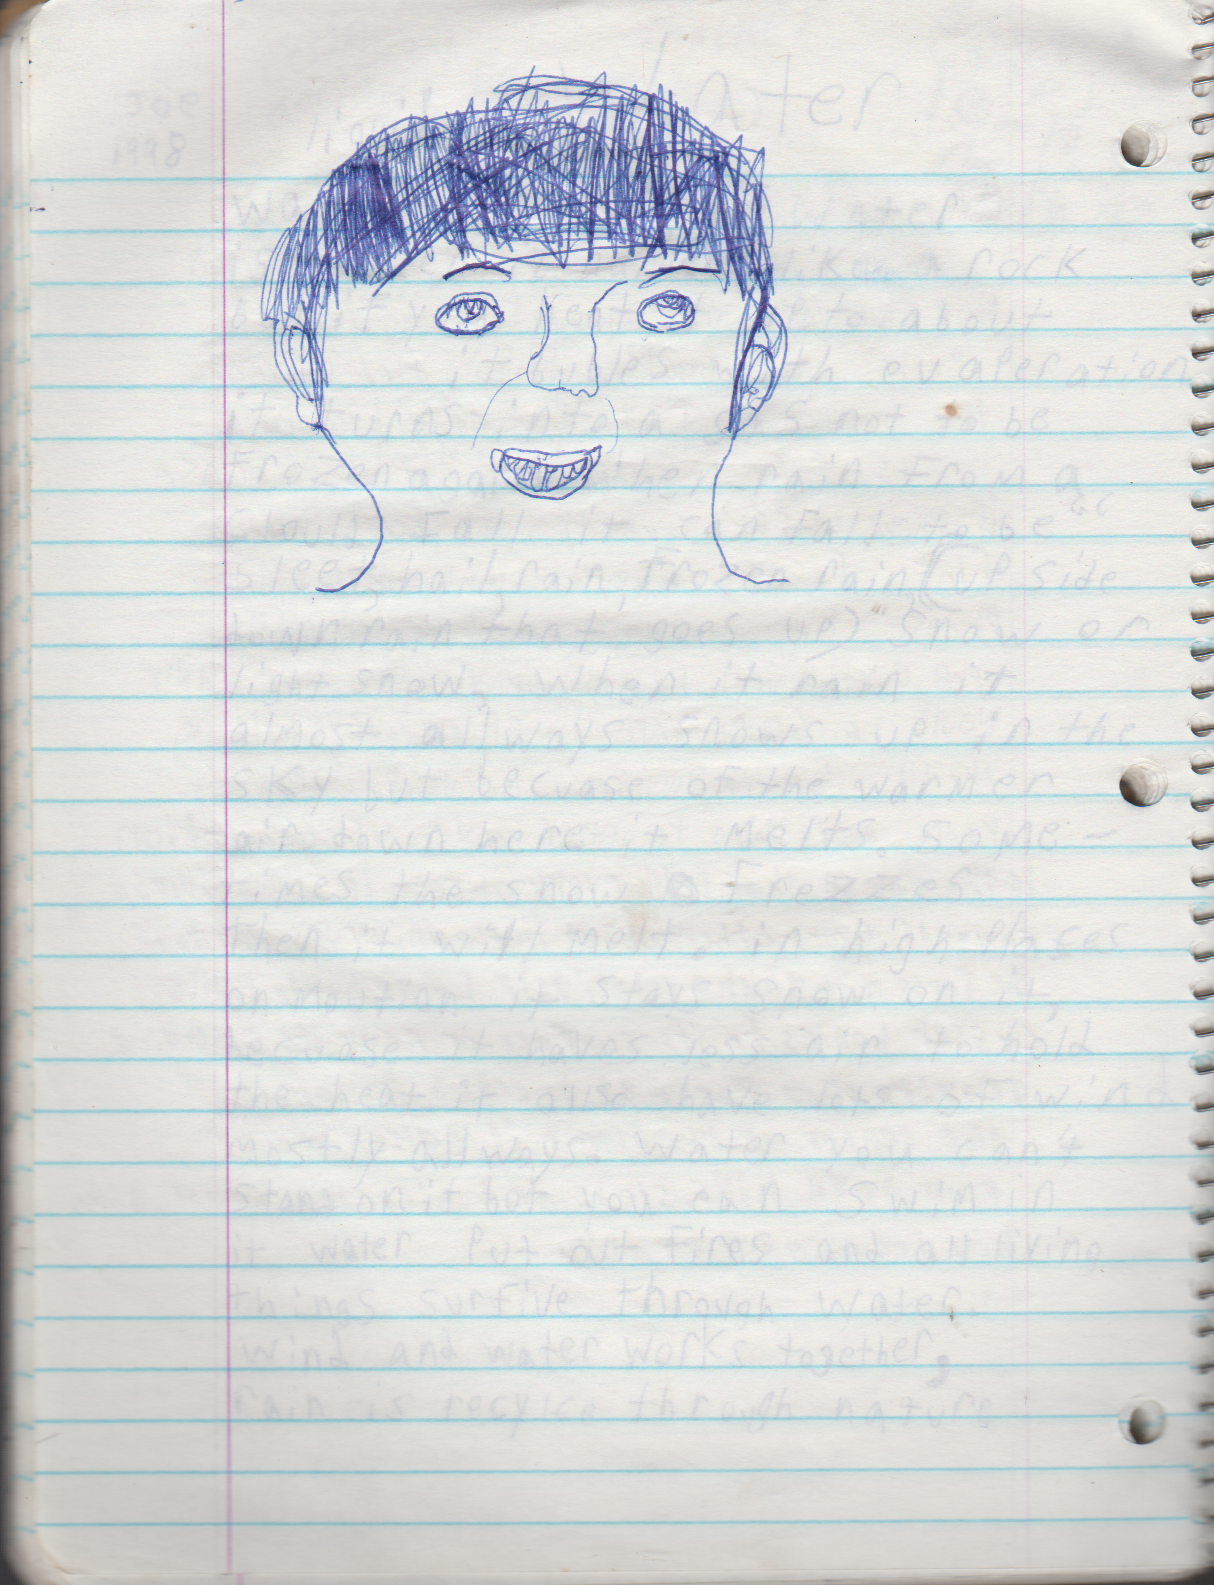 1996-08-18 - Saturday - 11 yr old Joey Arnold's School Book, dates through to 1998 apx, mostly 96, Writings, Drawings, Etc-063.png